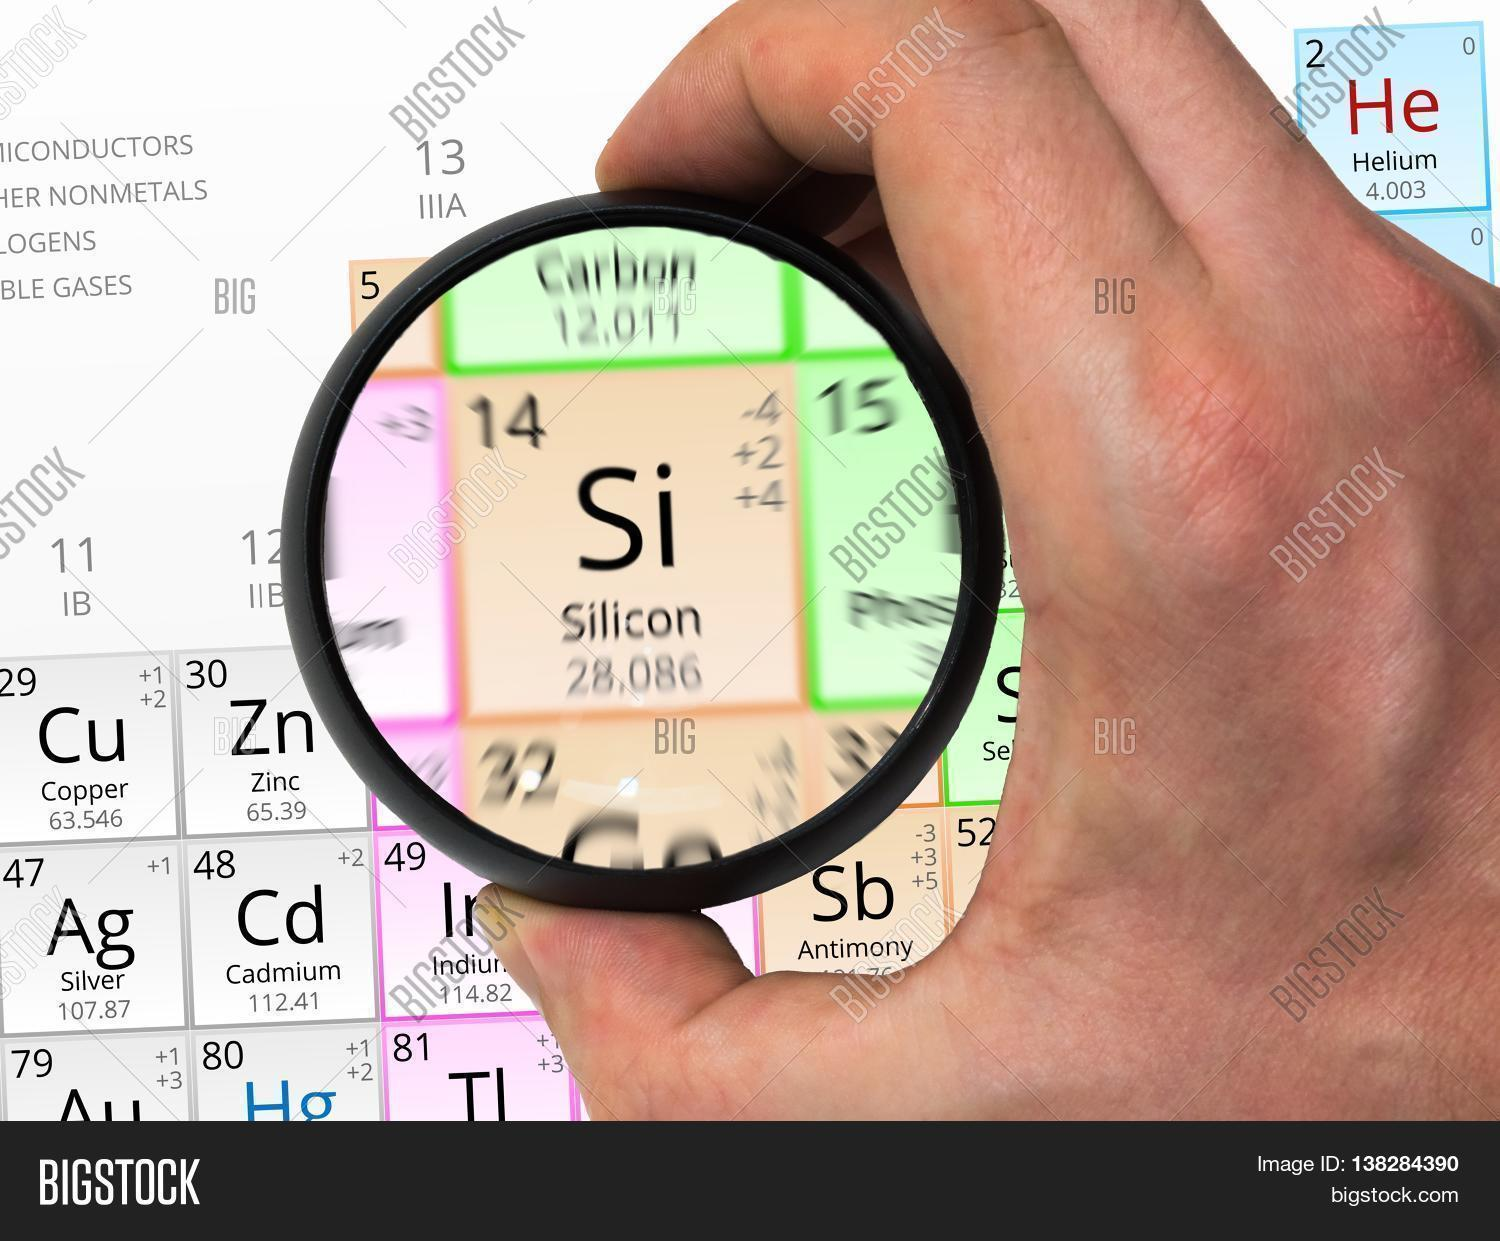 Silicon symbol periodic table images periodic table images silicon symbol si element image photo bigstock silicon symbol si element of the periodic table zoomed gamestrikefo Gallery